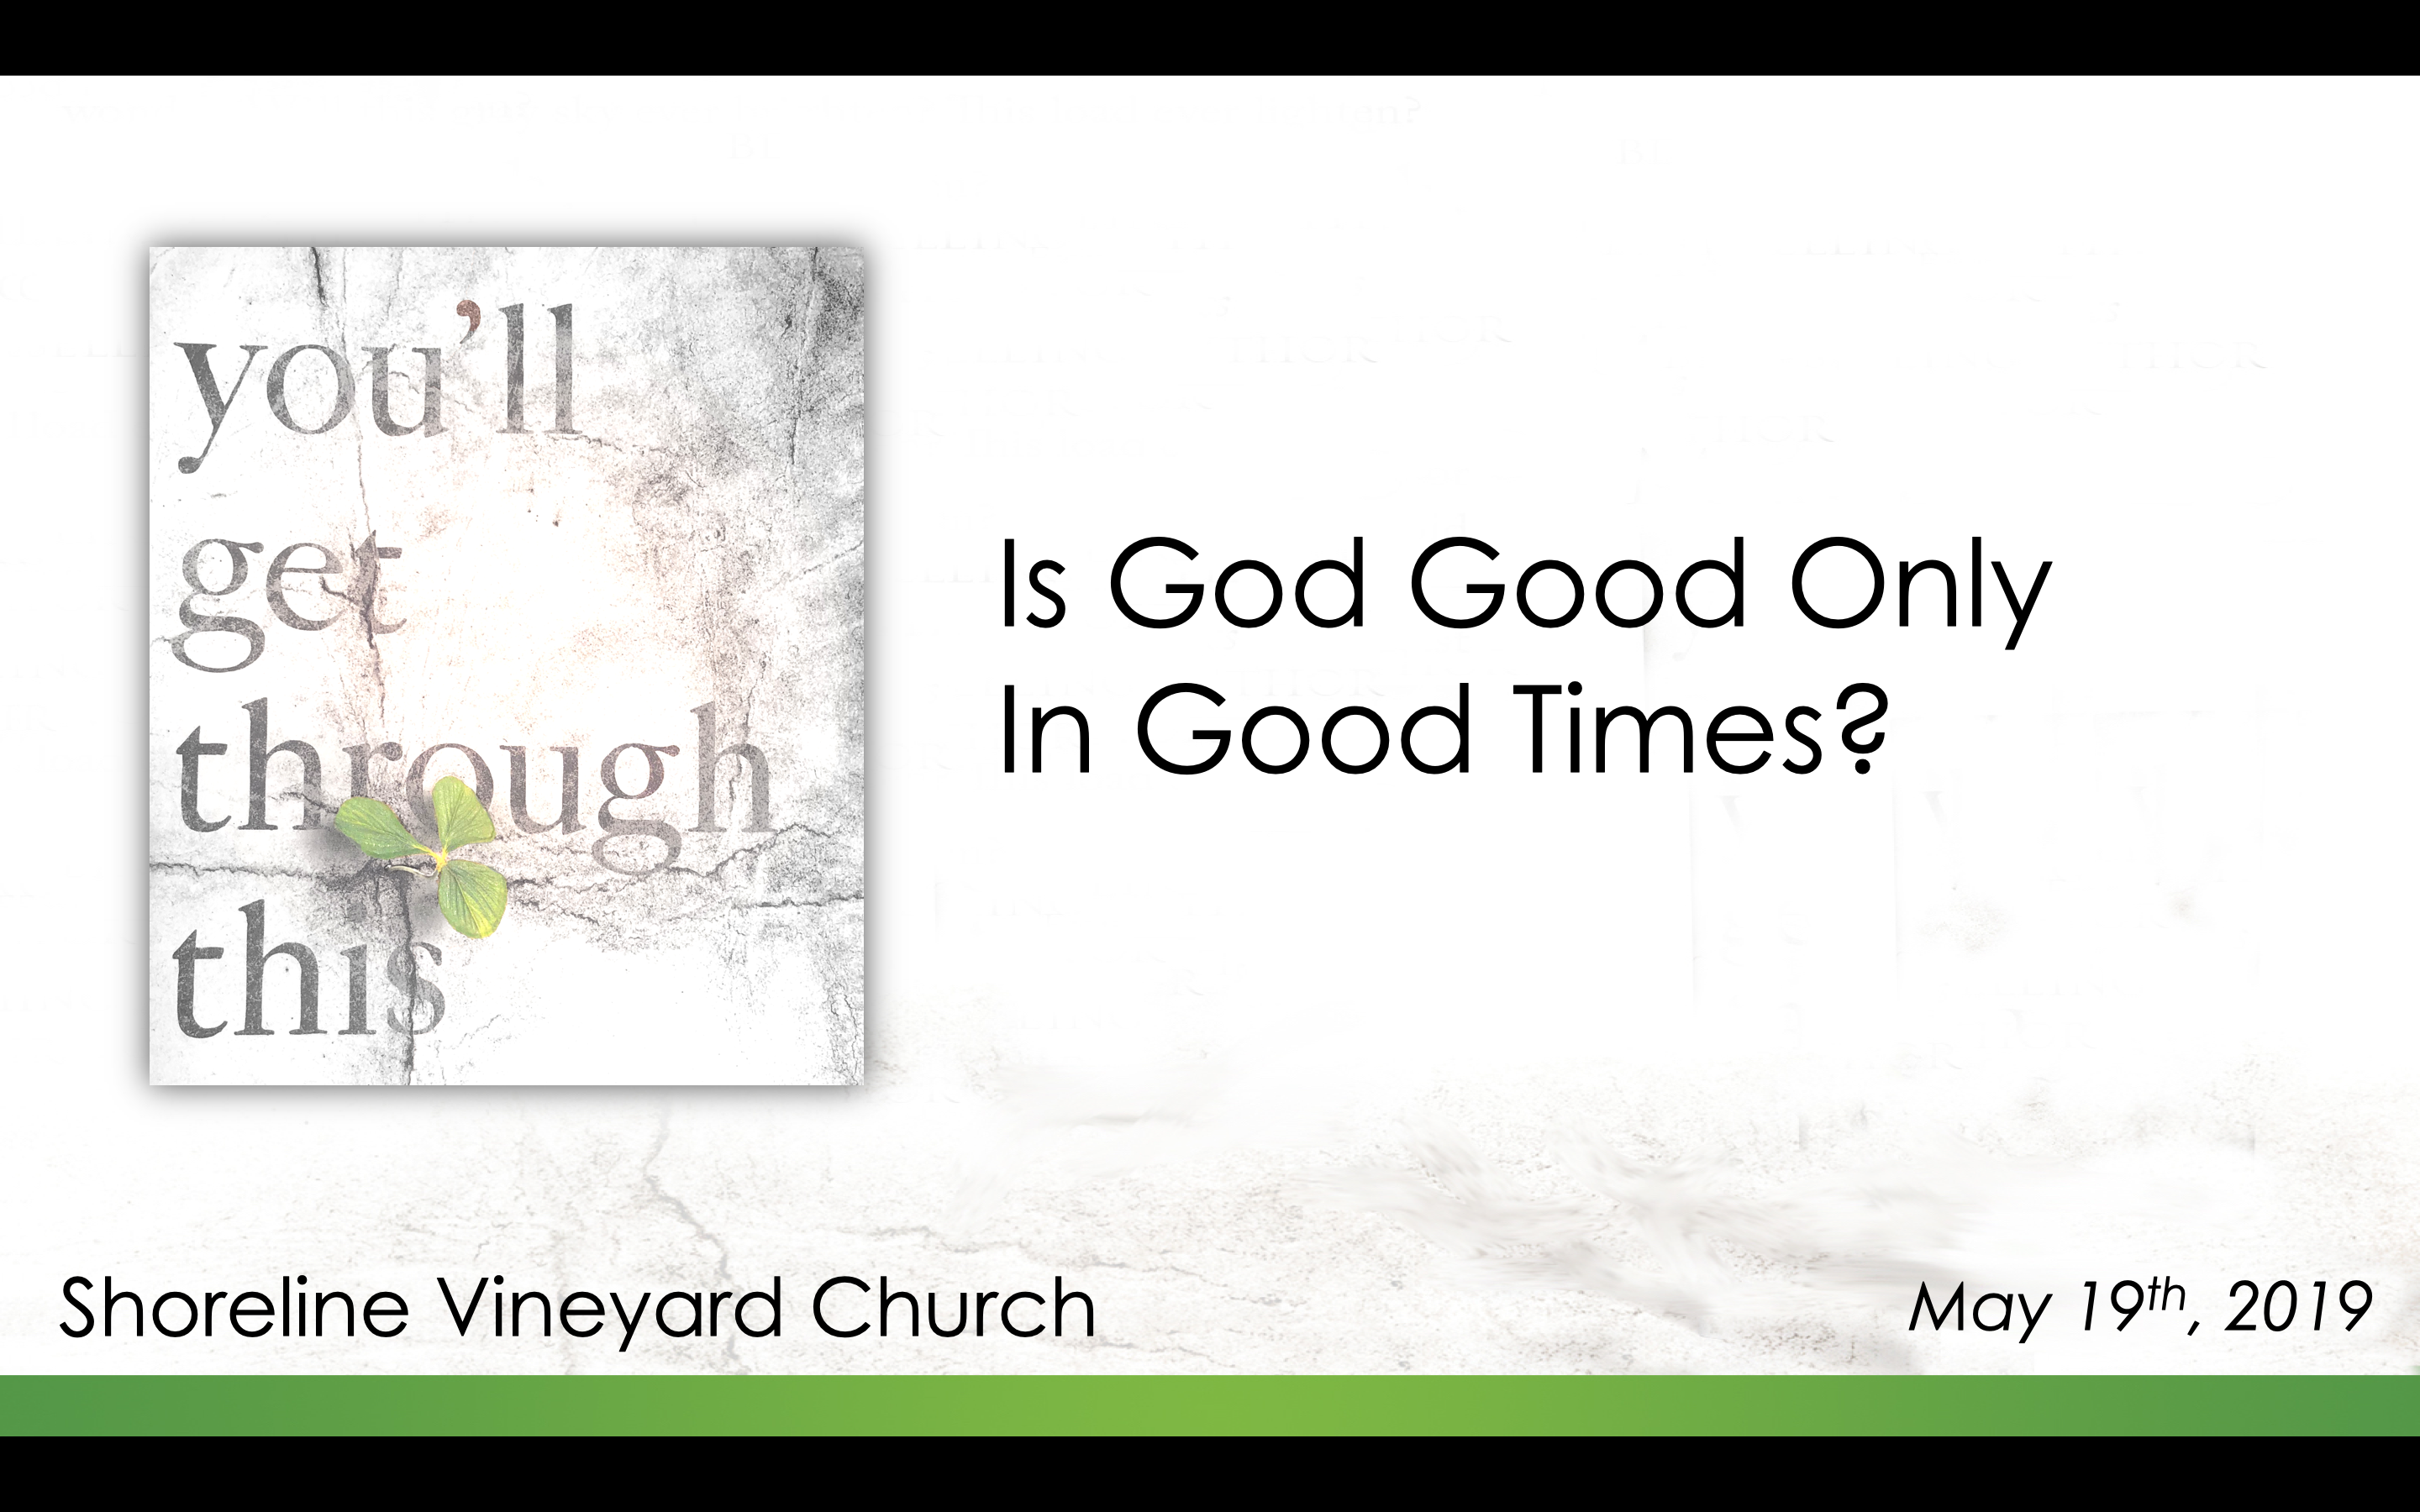 Is God Good Only in Good Times? – You'll Get Through This